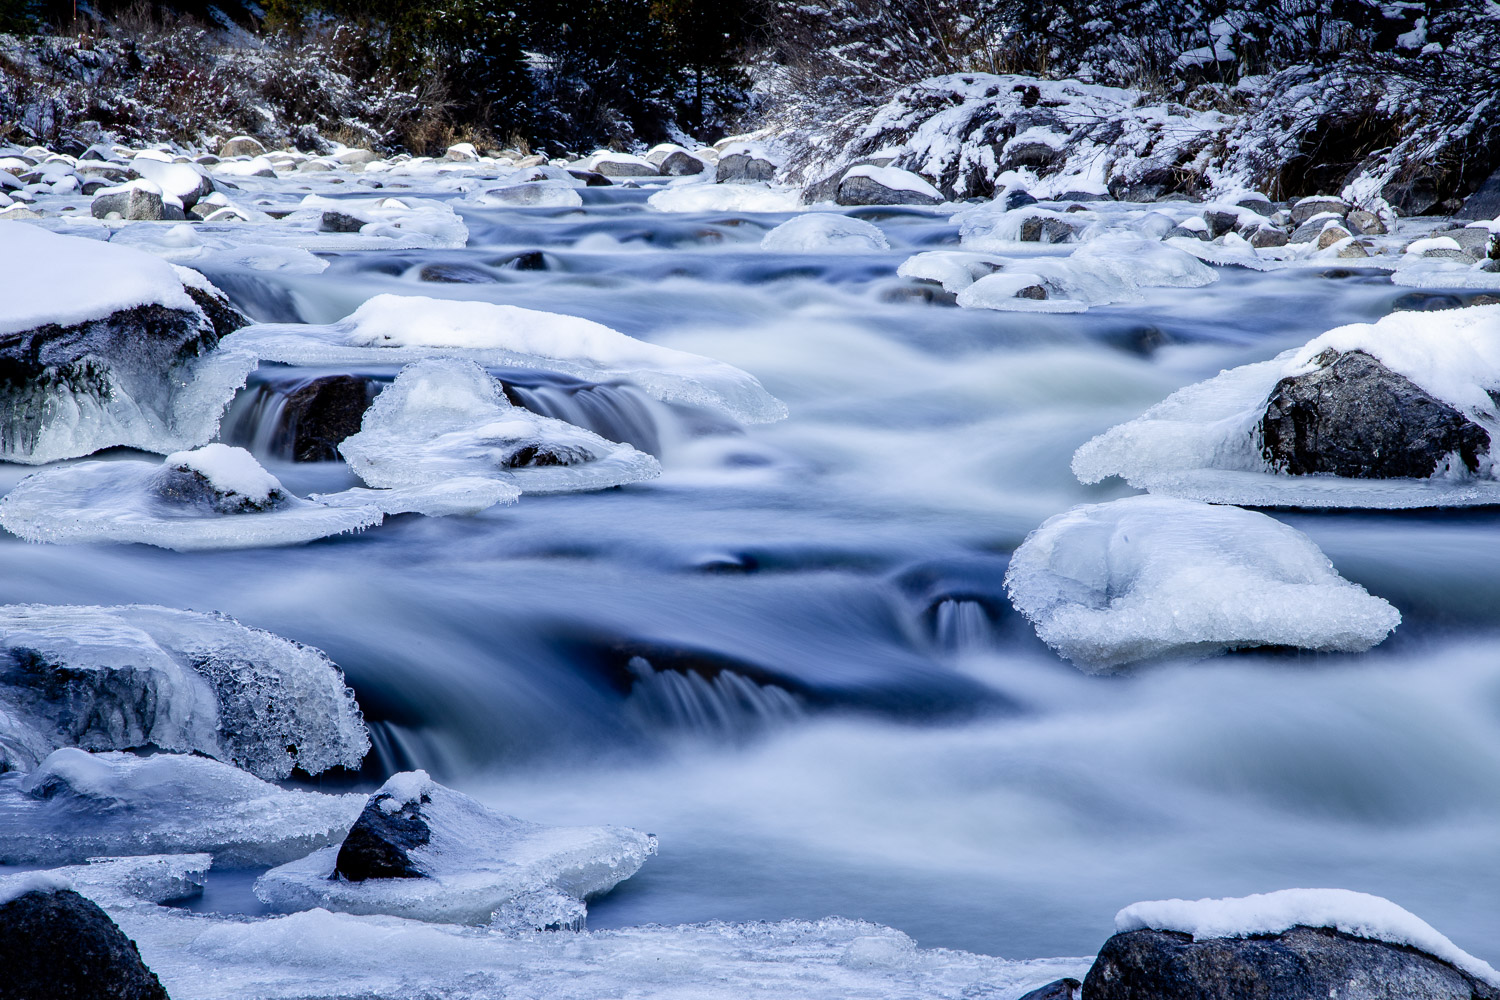 Image: A long exposure blurs the liquid water, but the ice on the rocks is still, a way to display t...